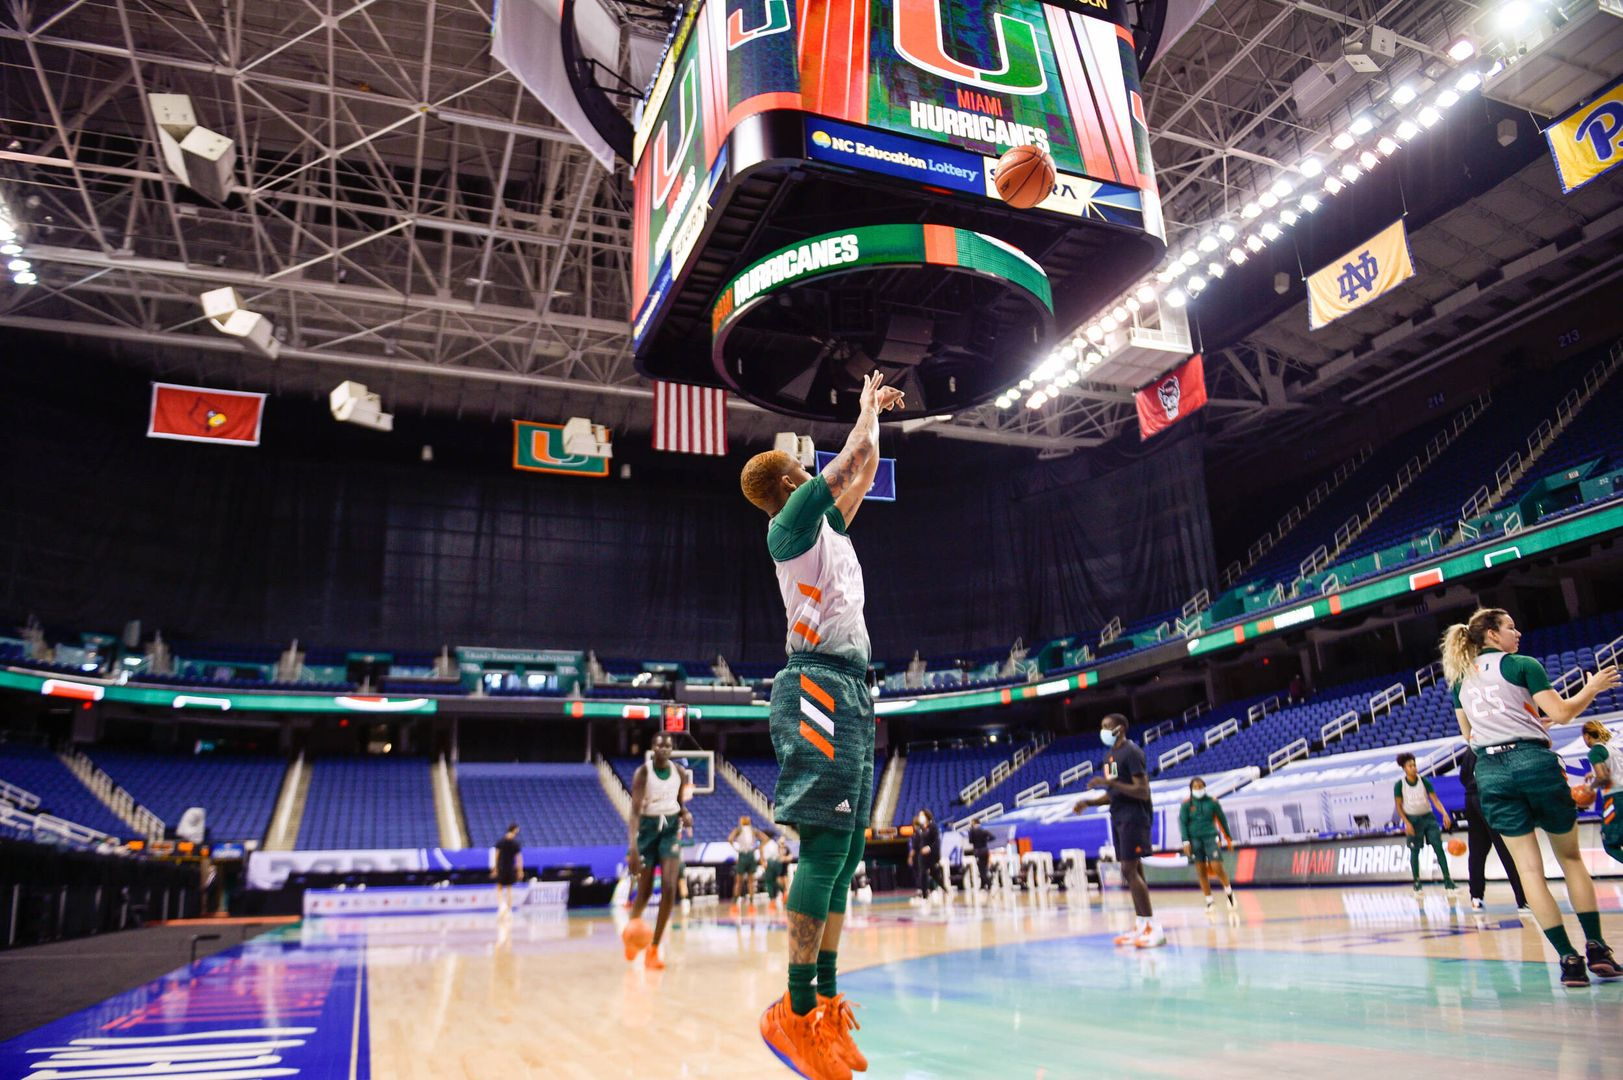 It's Tournament Time for The Canes